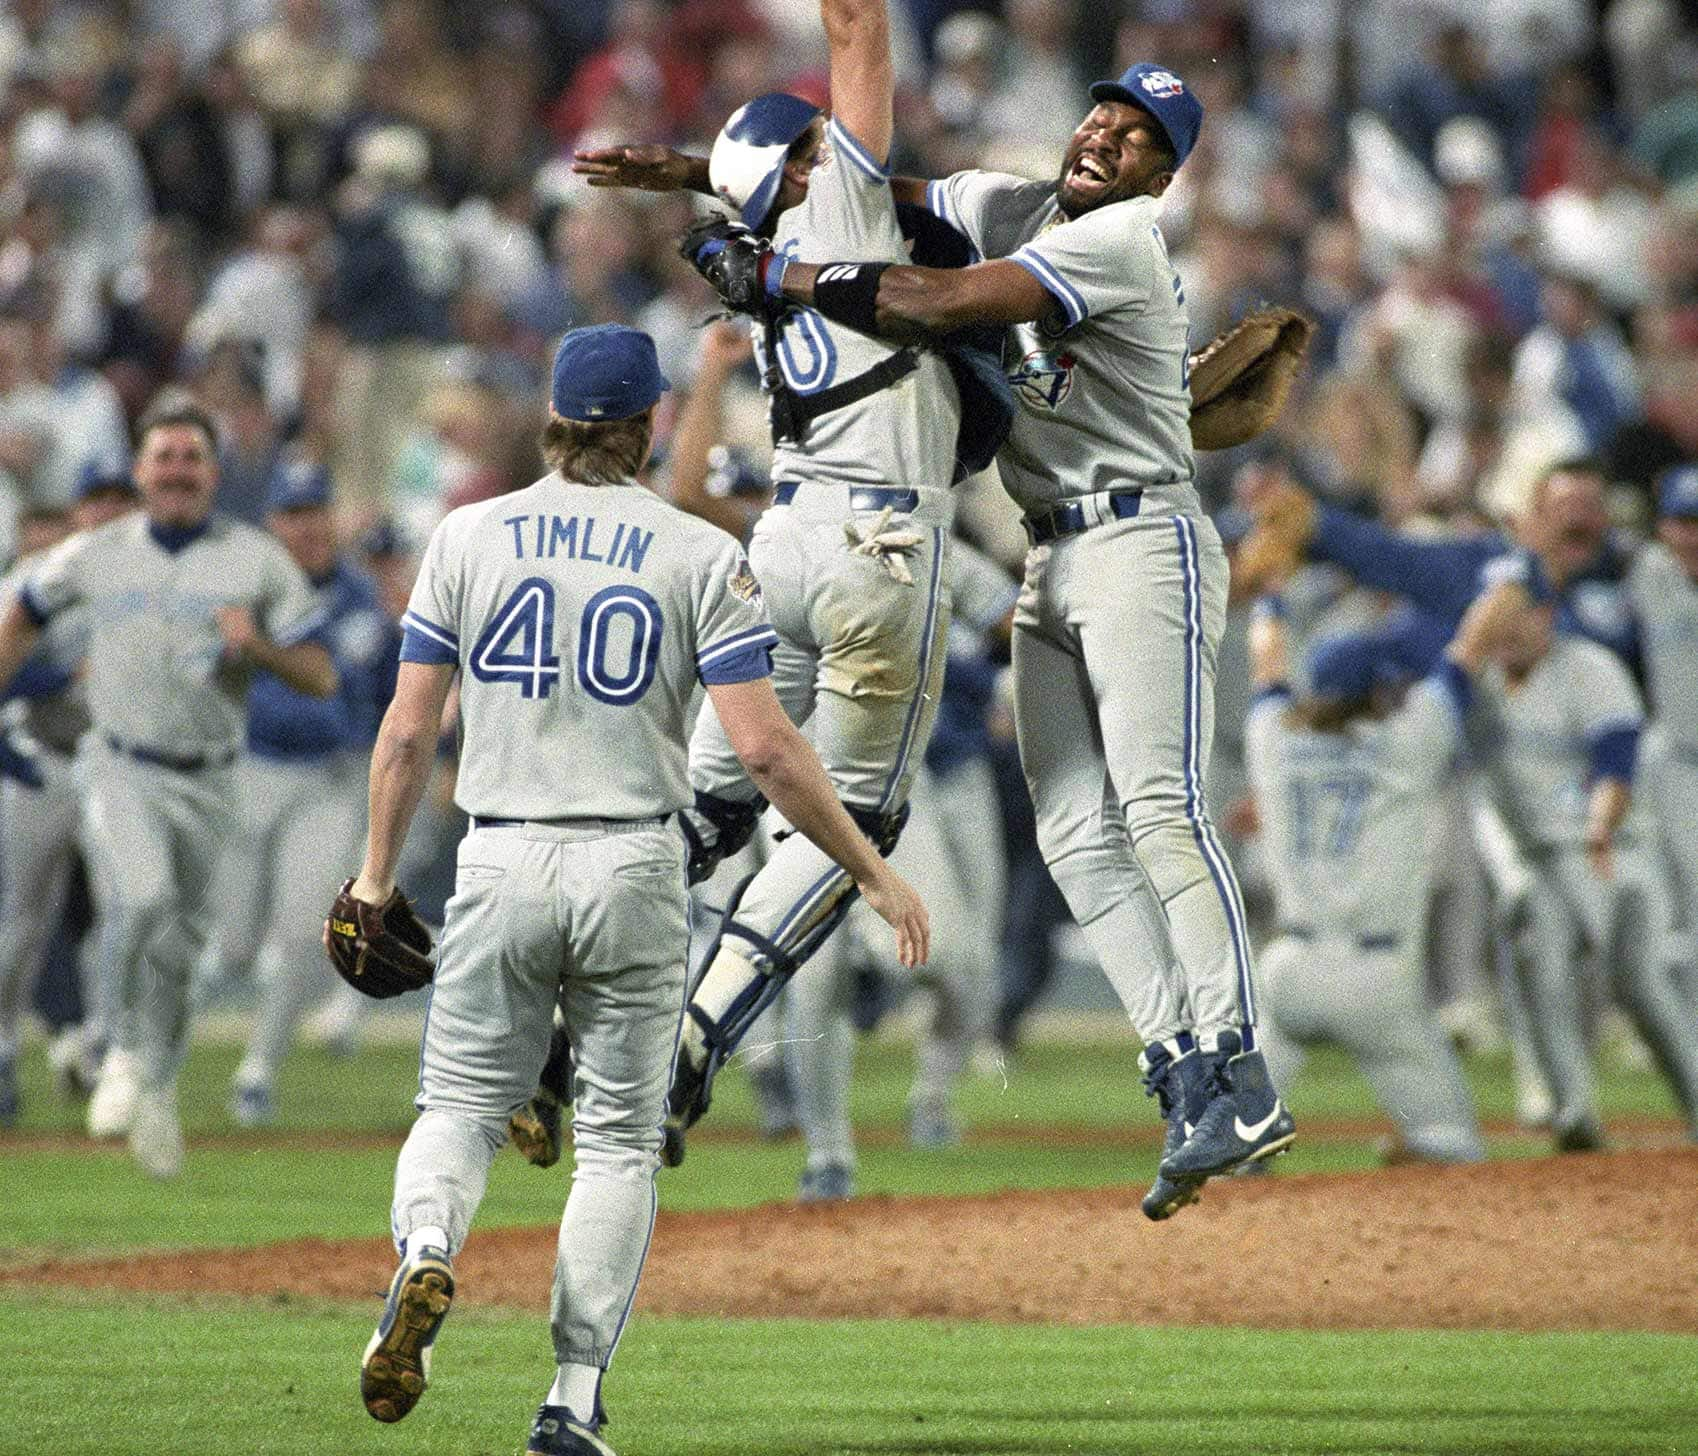 Toronto Blue Jays Joe Carter (right) and Pat Borders leap into the air as pitcher Mike Timlin (left) looks on as the Toronto Blue Jays downed the Atlanta Braves to win the 1992 World Series in Atlanta Oct. 24, 1992.